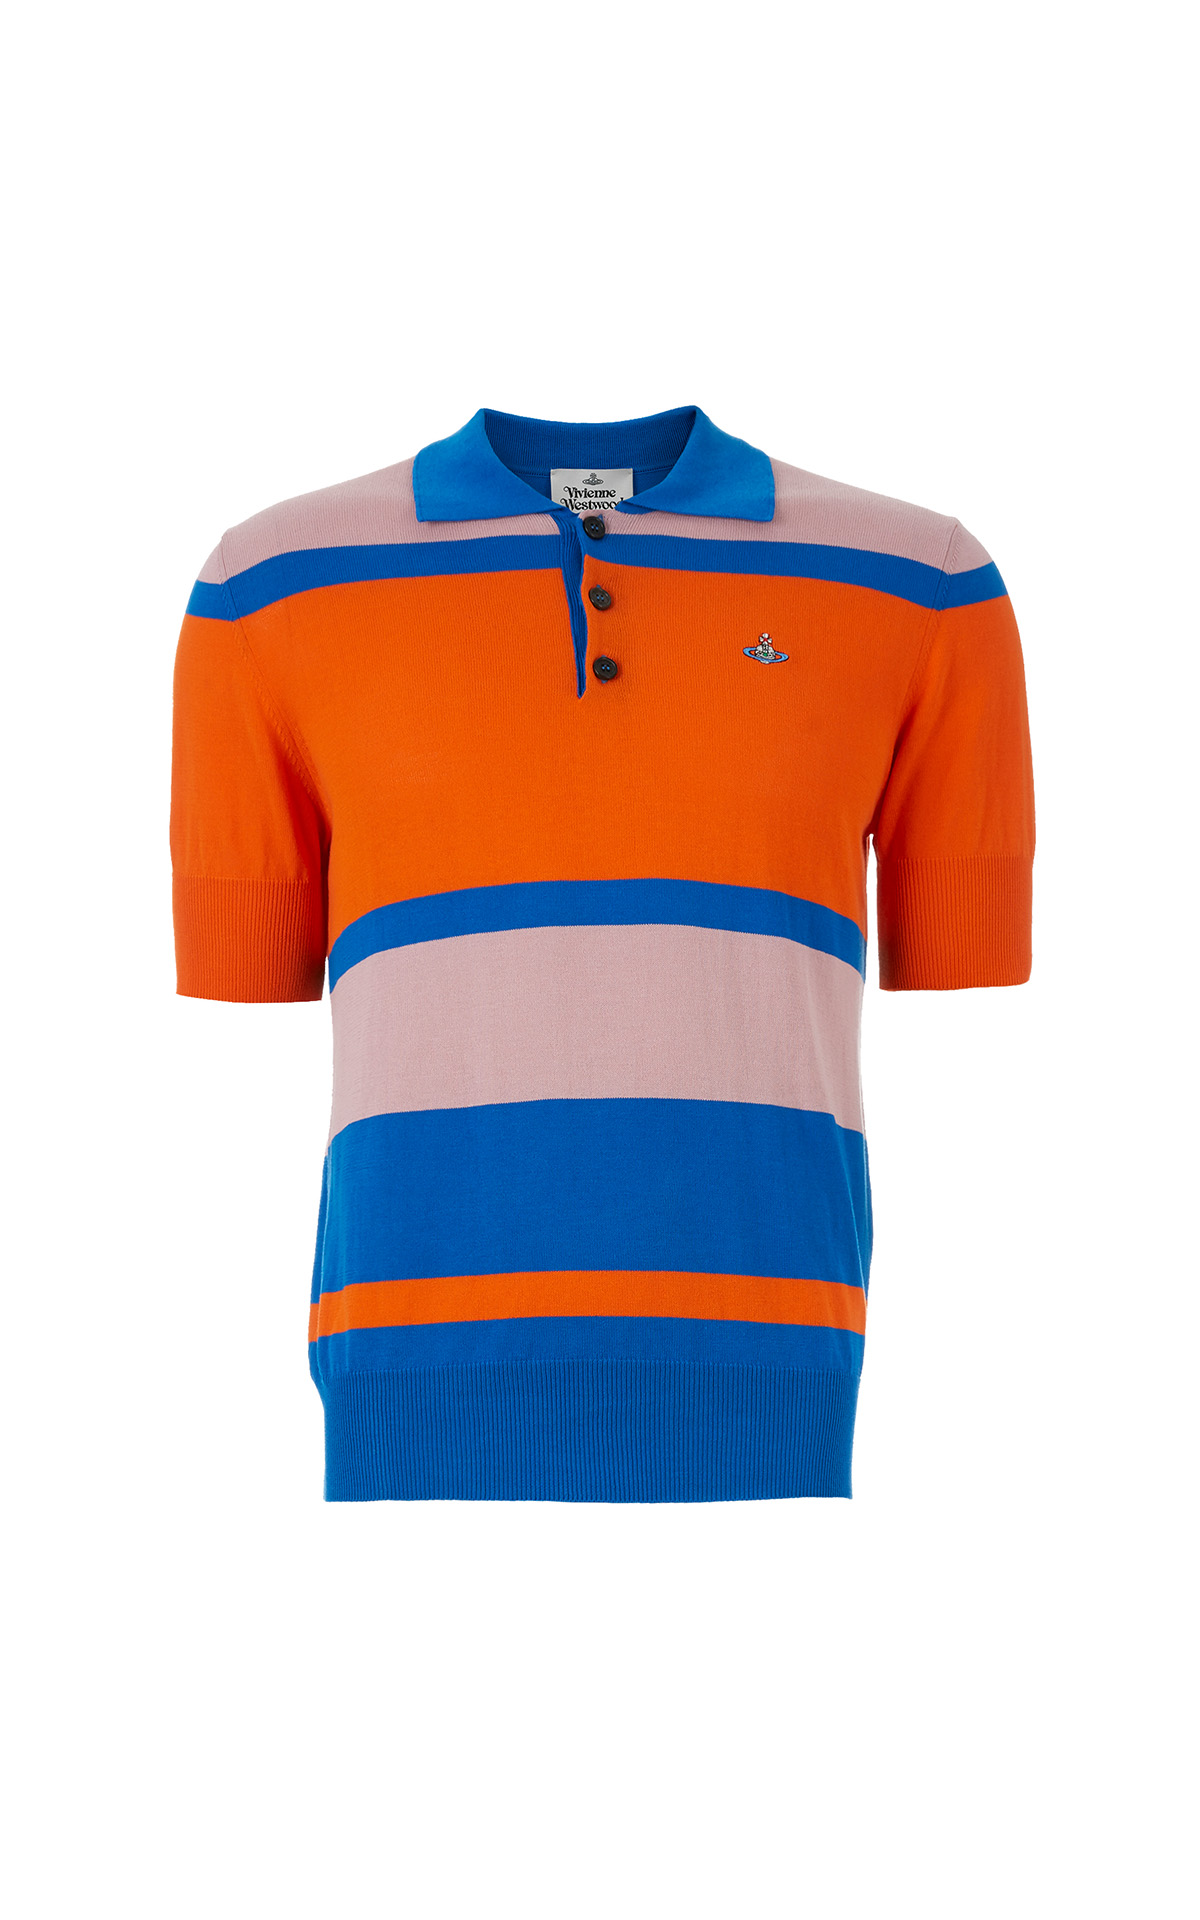 Vivienne Westwood New polo knit from Bicester Village